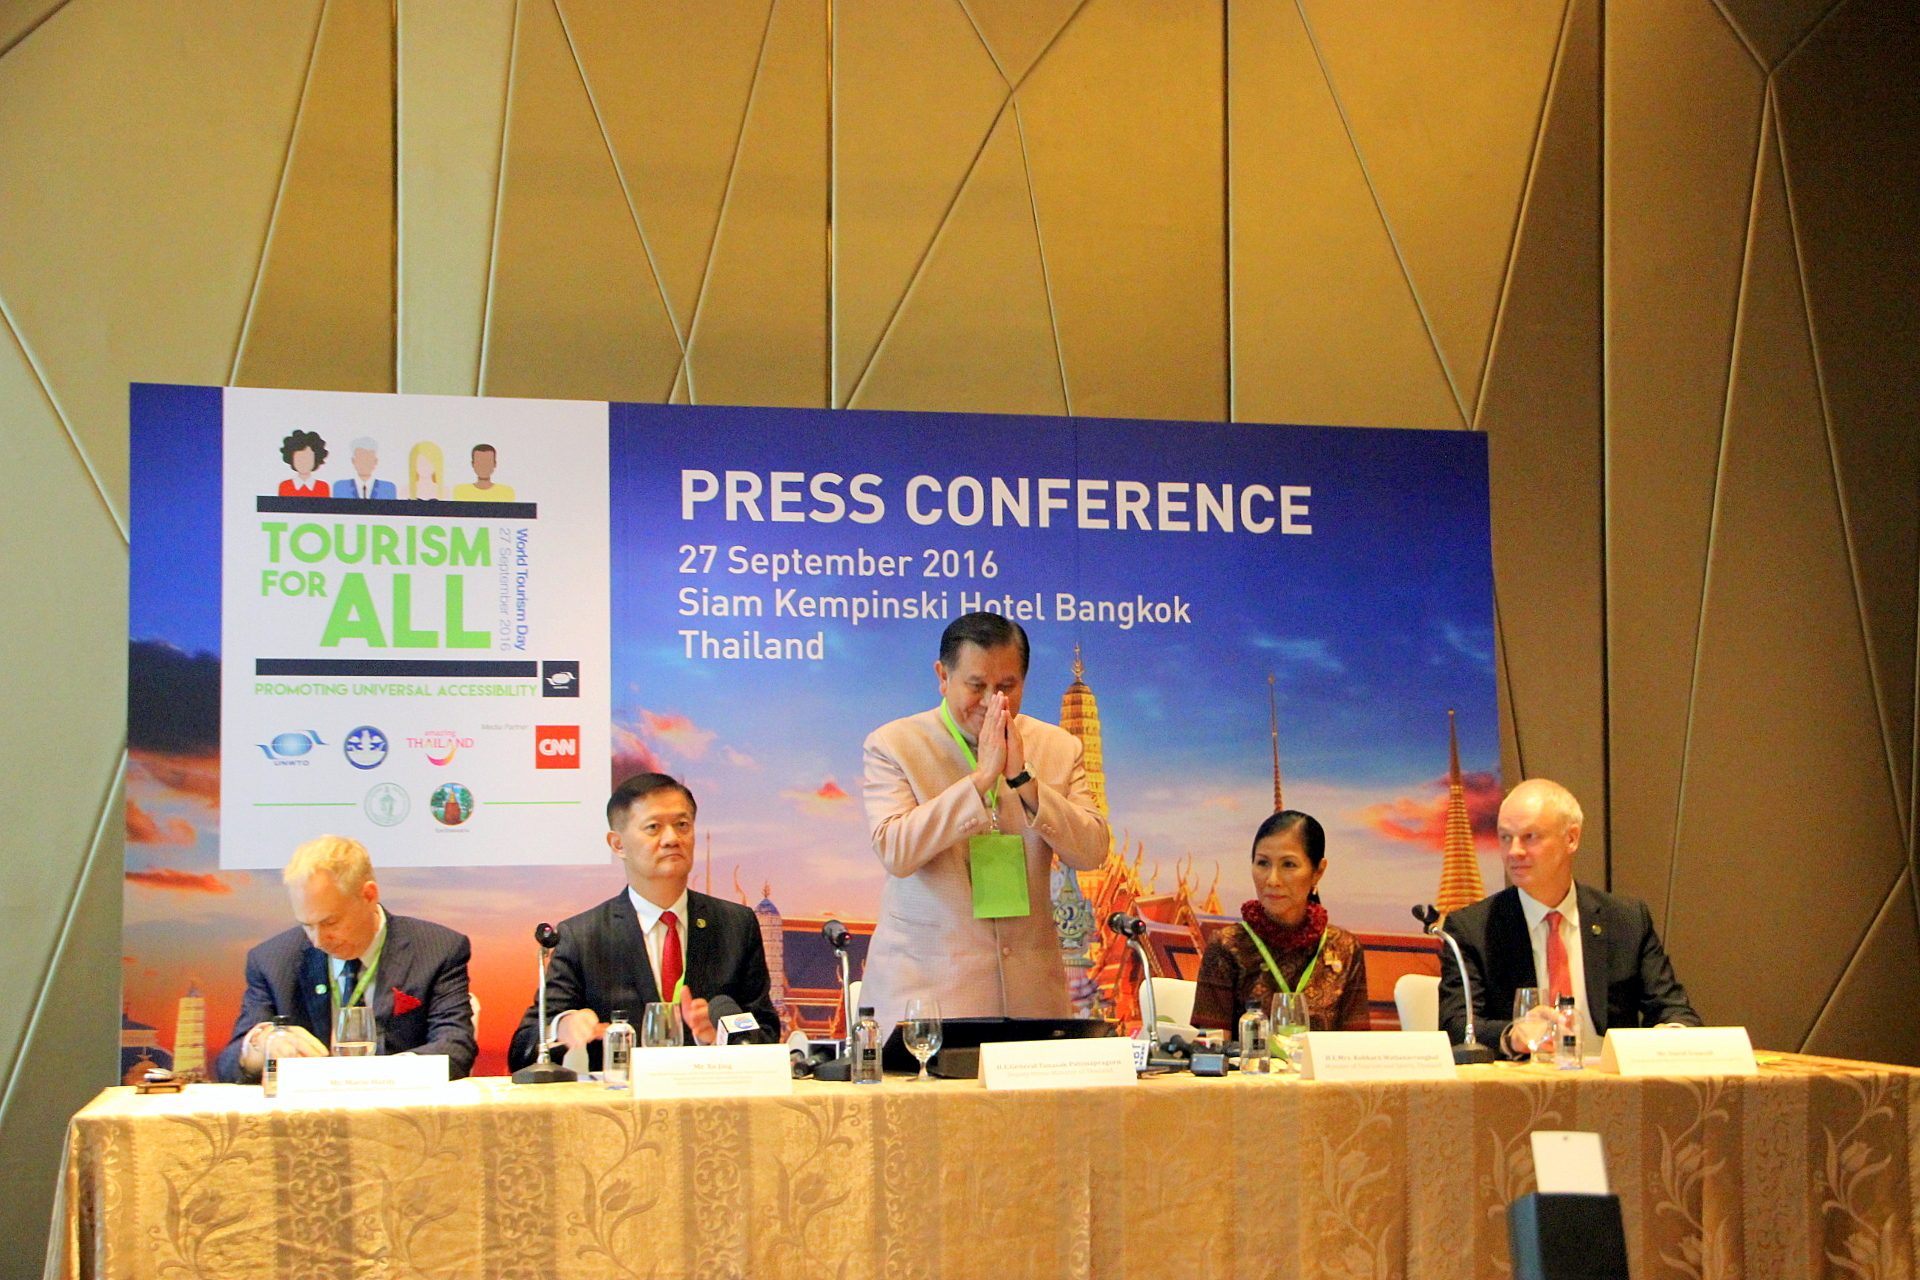 World Tourism Day 2016 press conference